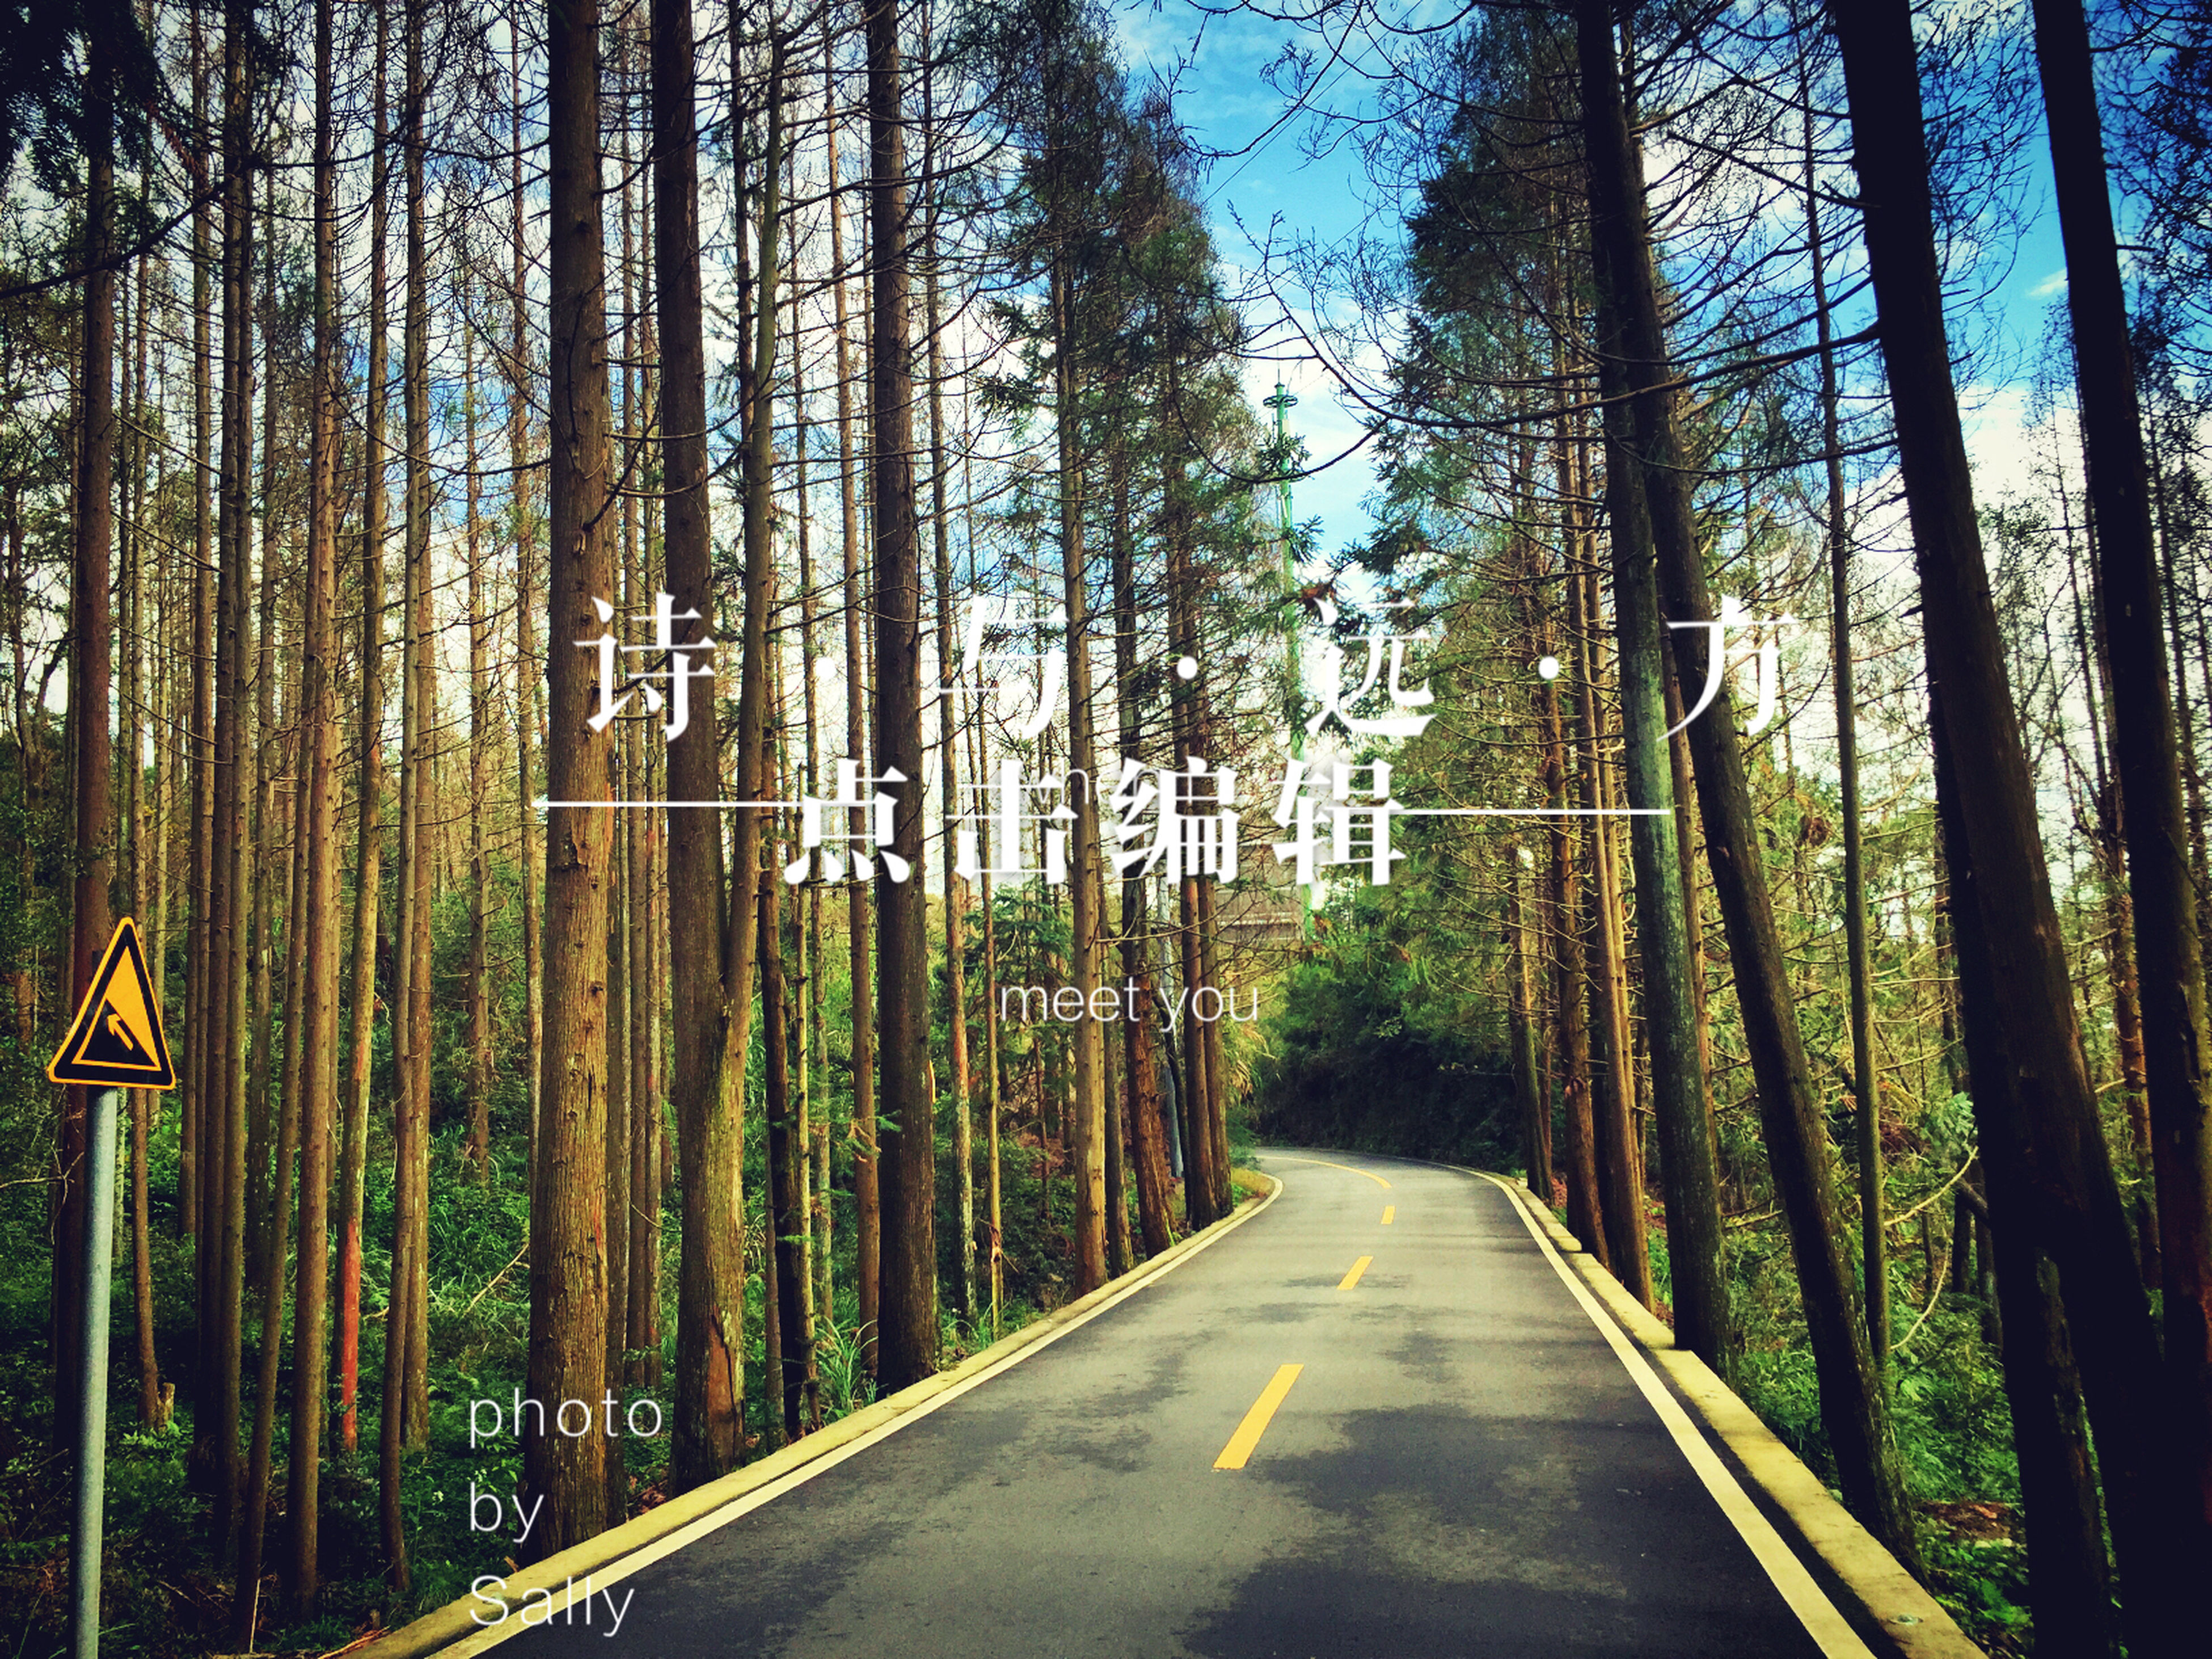 the way forward, tree, diminishing perspective, transportation, vanishing point, road, tree trunk, treelined, tranquility, forest, nature, growth, empty road, long, tranquil scene, woodland, road marking, day, empty, beauty in nature